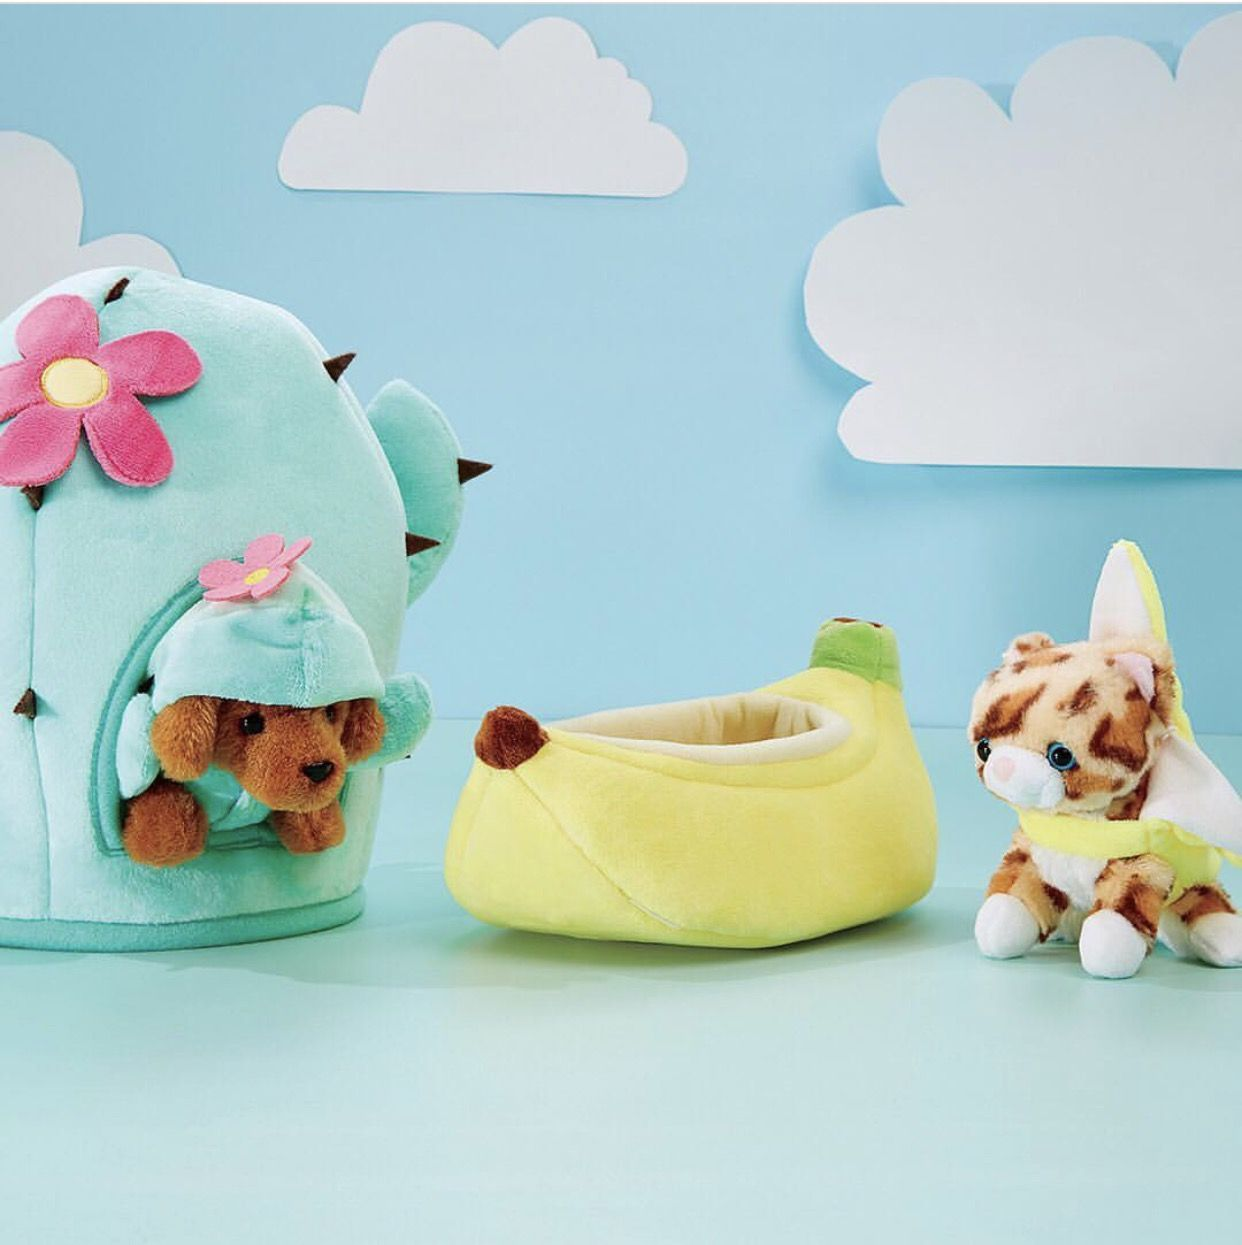 Pin By Corieann On Dogs Justice Toys Pet Shop Cute Outfits For